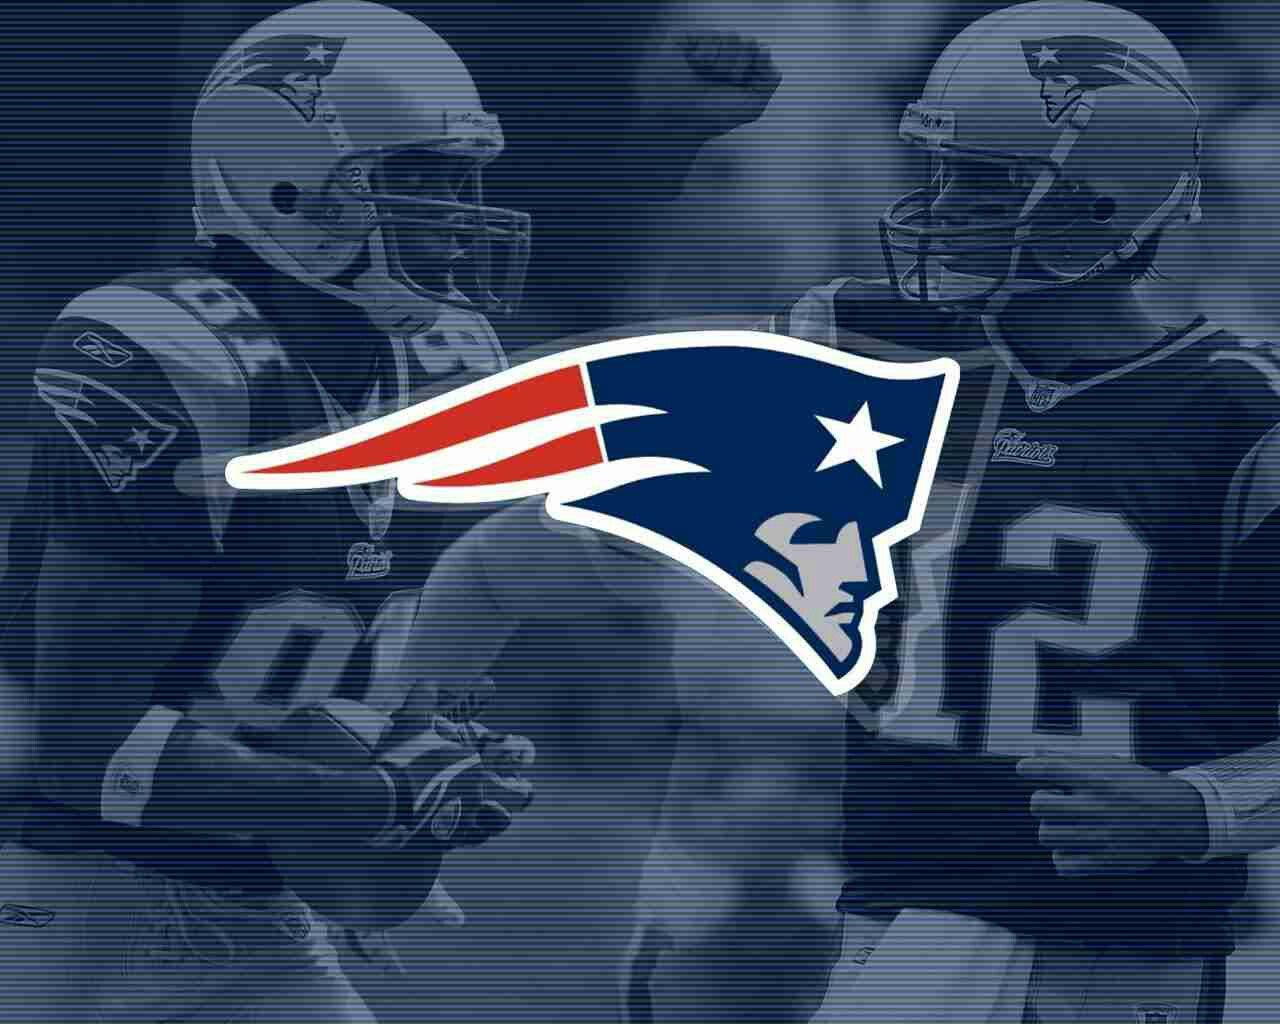 New England Patriots wallpaper. something for the haters